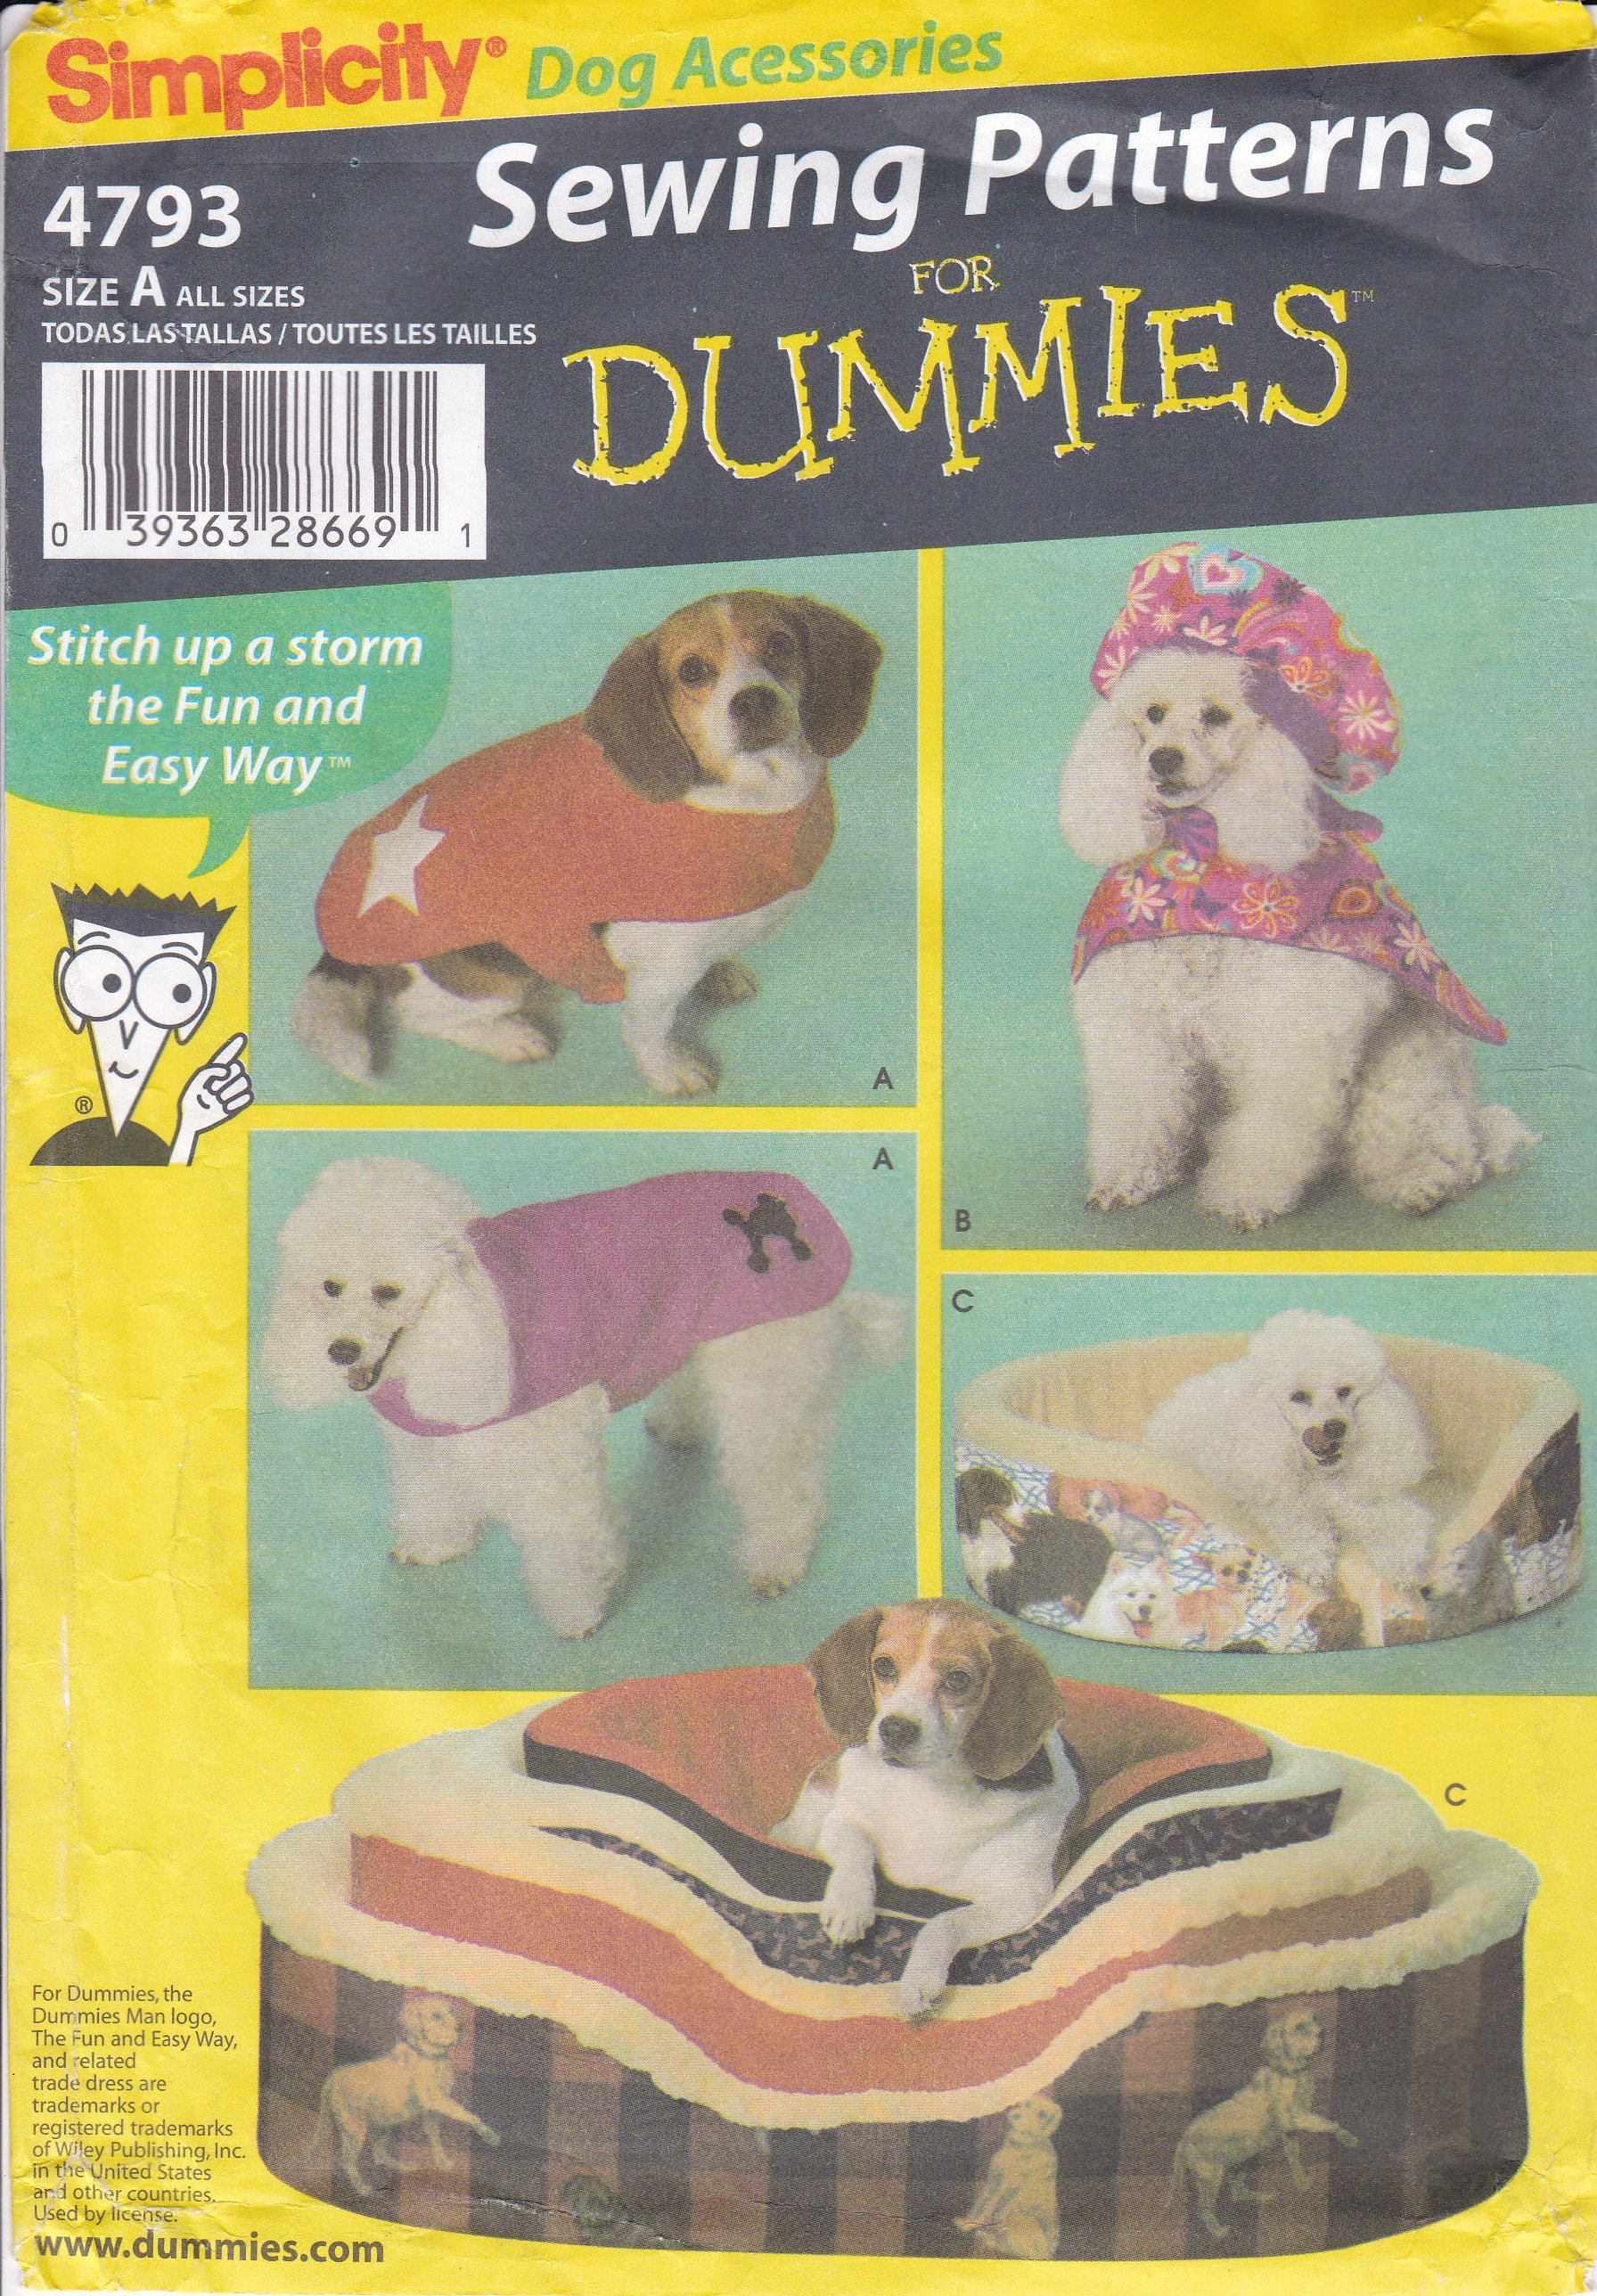 Free us ship sewing pattern simplicity 4793 crafts animal pet dog free us ship sewing pattern simplicity 4793 crafts animal pet dog cat bed small to large coat hat sewing for dummies new factory folded jeuxipadfo Image collections